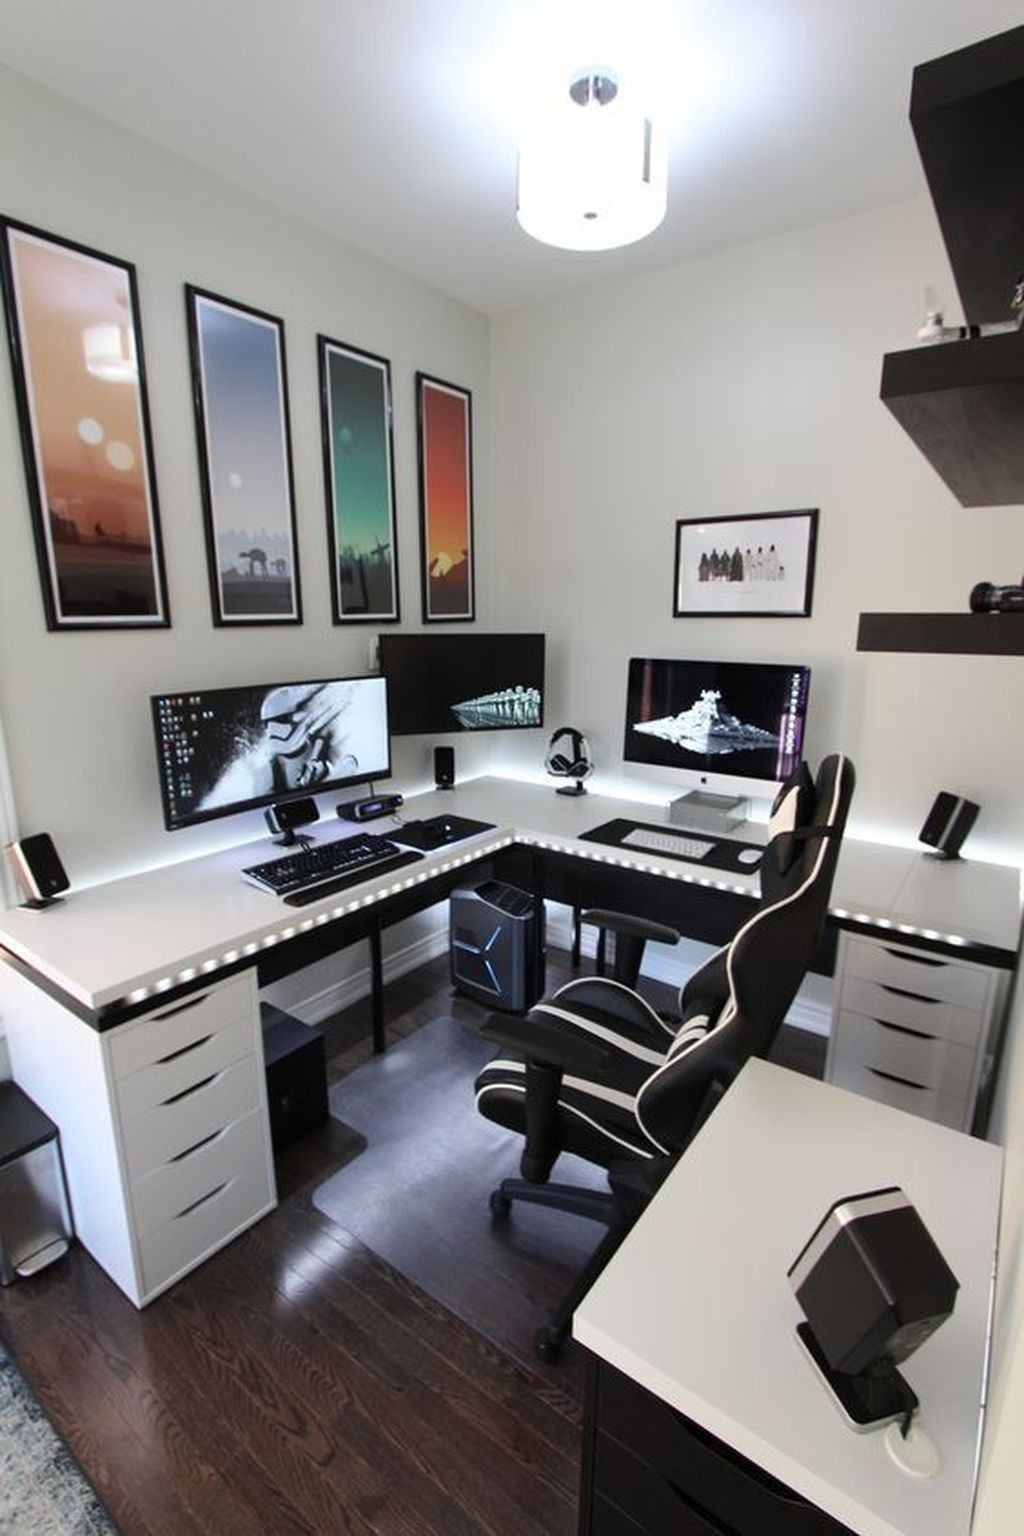 The Best Gaming Desk Decor Ideas With Computer Setup 28 https